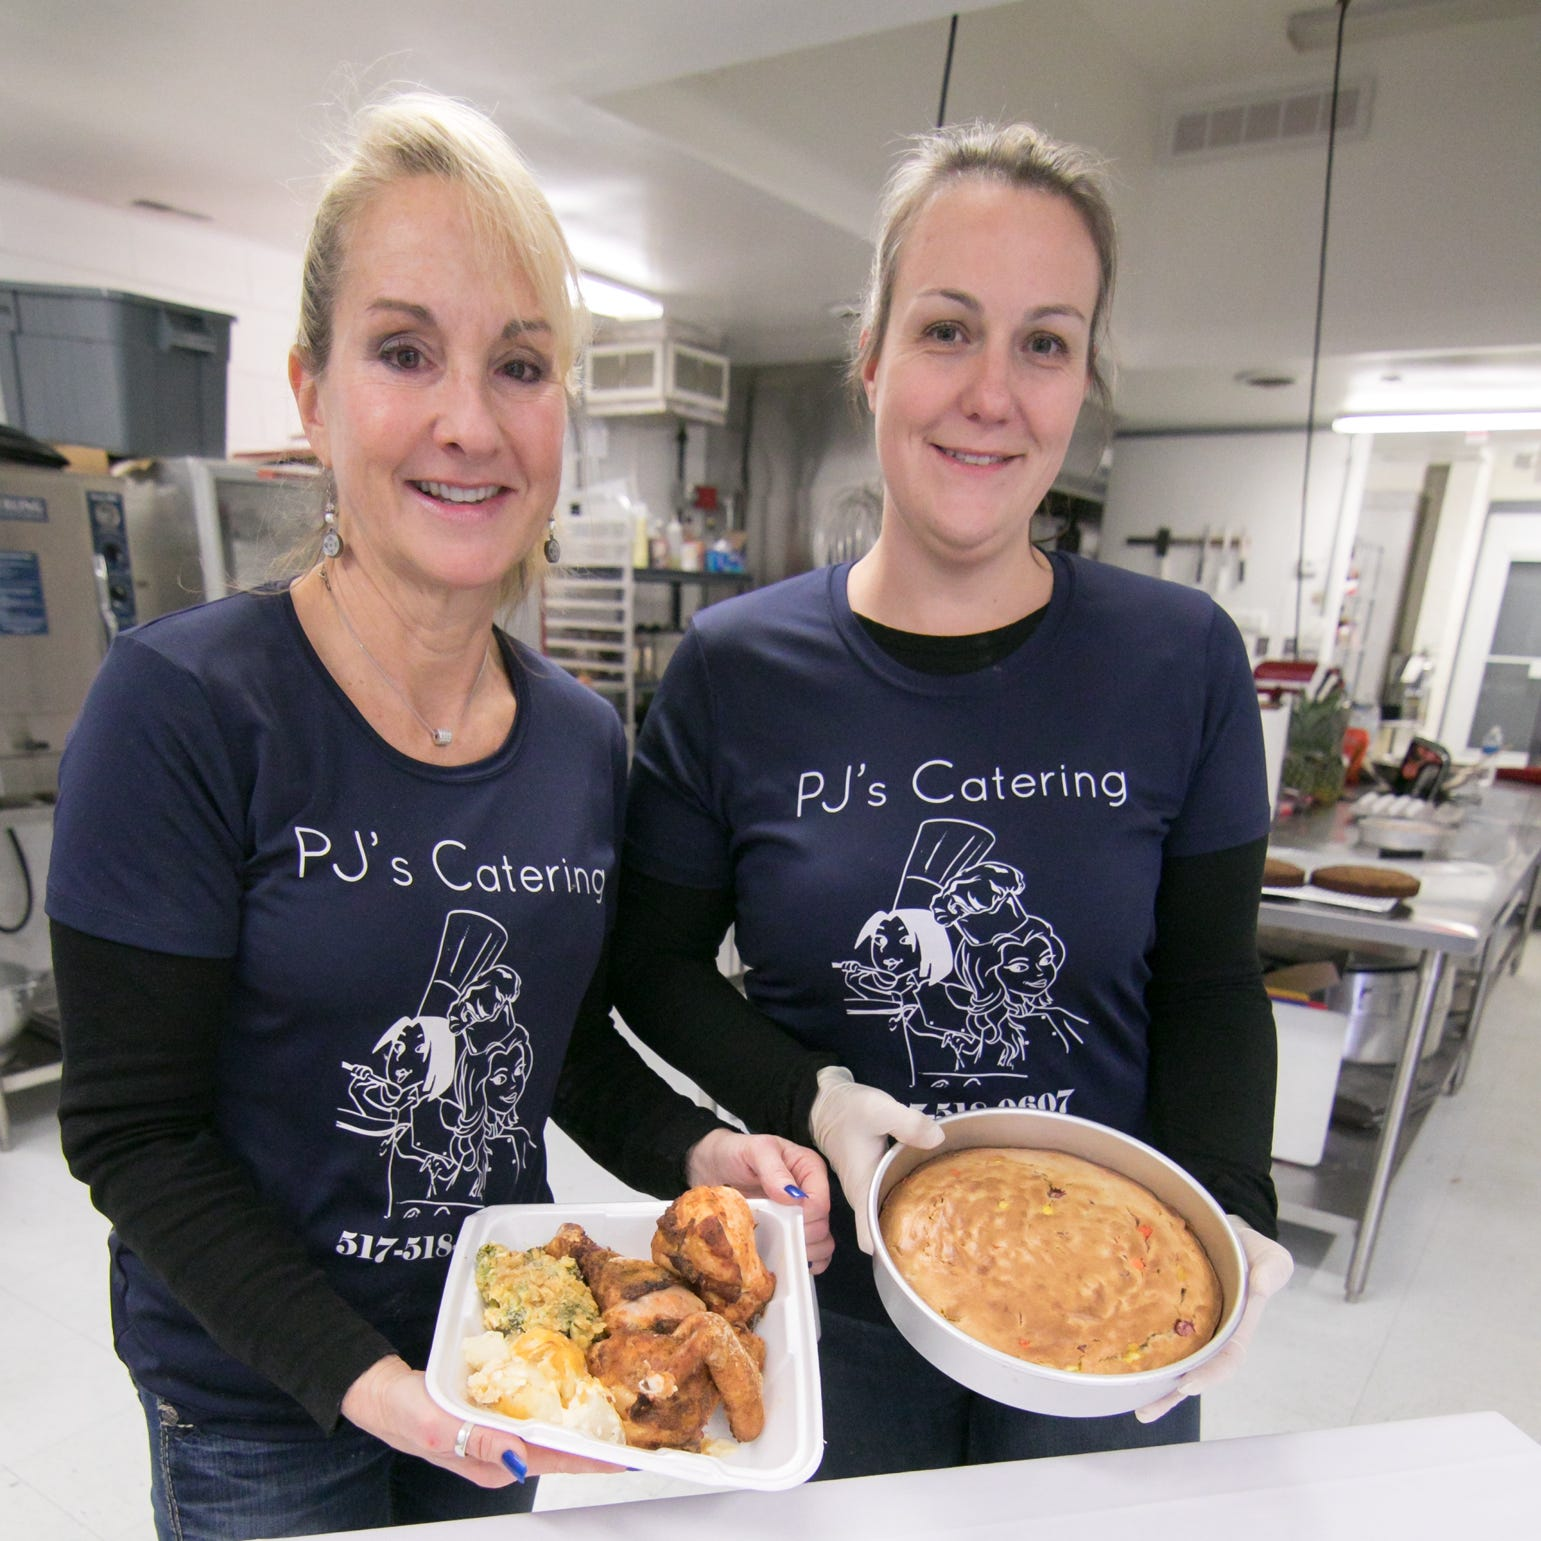 Takeout dinners a new offering at PJ's Catering in Howell